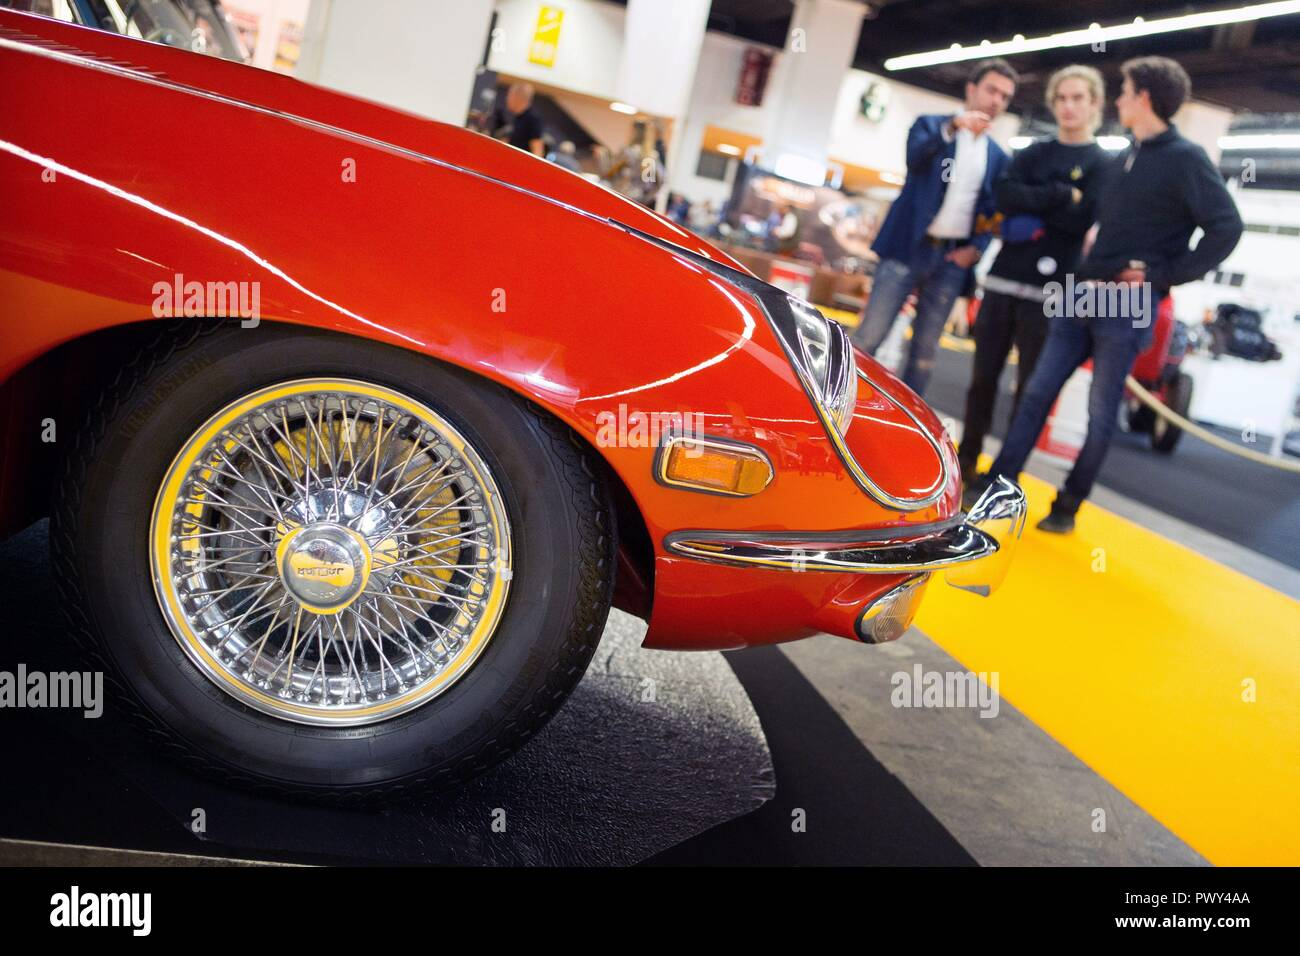 Barcelona, Spain. 18th Oct, 2018. Attendants look at some vehicles during the inauguration day of the International Classical Vehicle Fair in Barcelona, Spain, 18 October 2018. Credit: Enric Fontcuberta/EFE/Alamy Live News - Stock Image